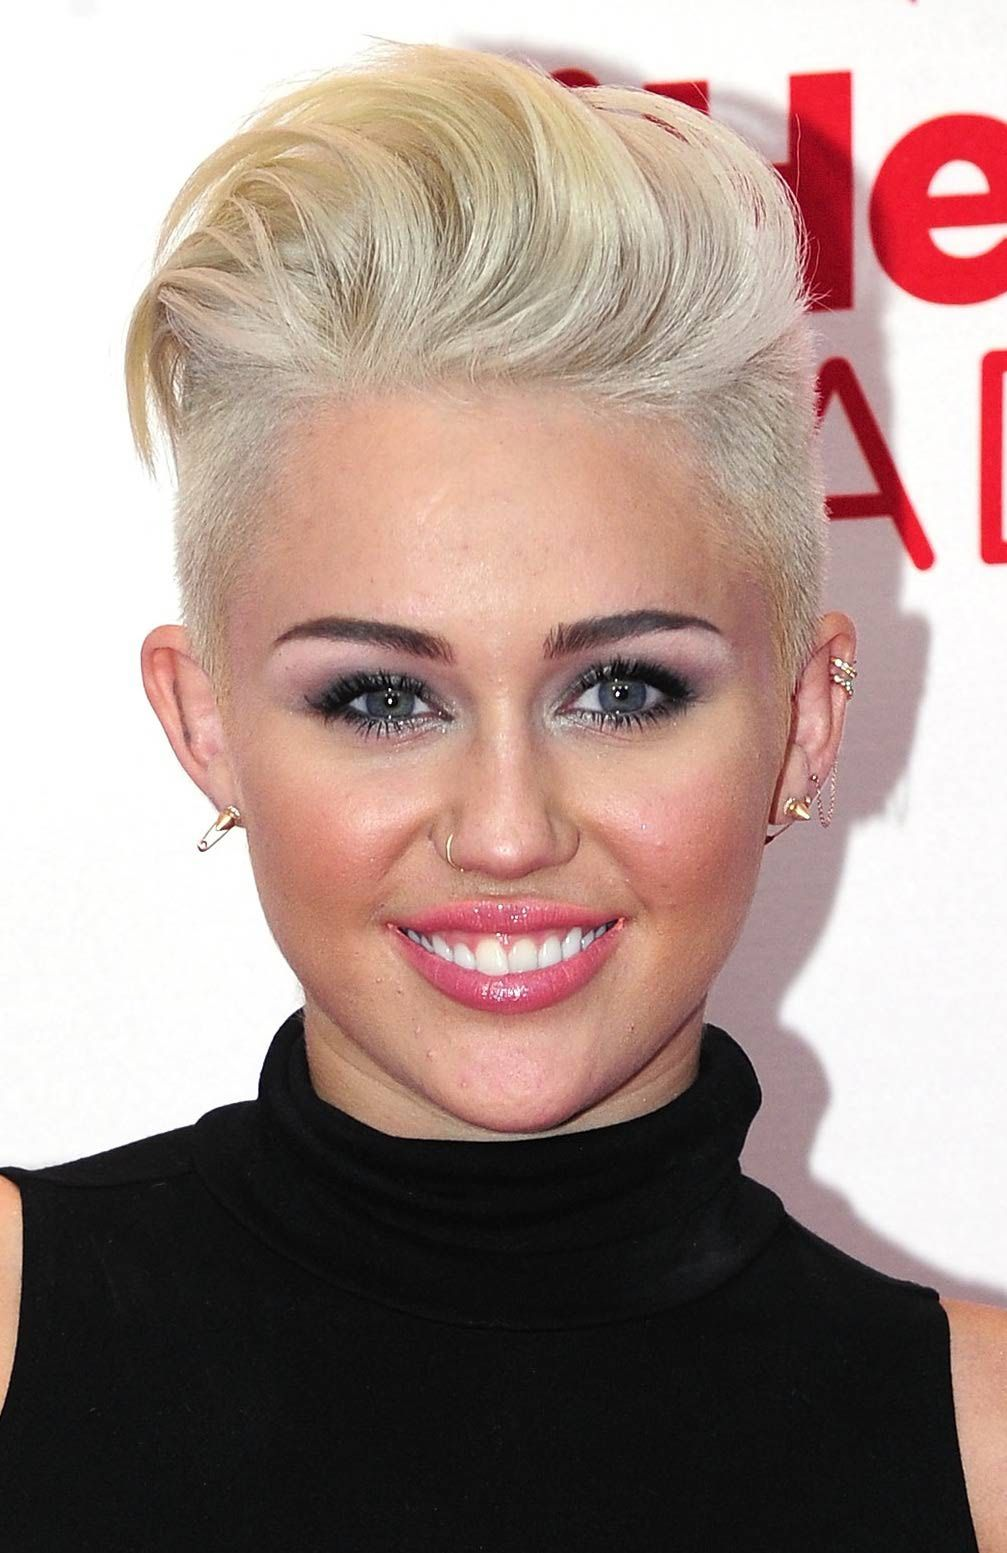 Miley Cyrus Hairstyles Over The Years Hair And Beauty Miley